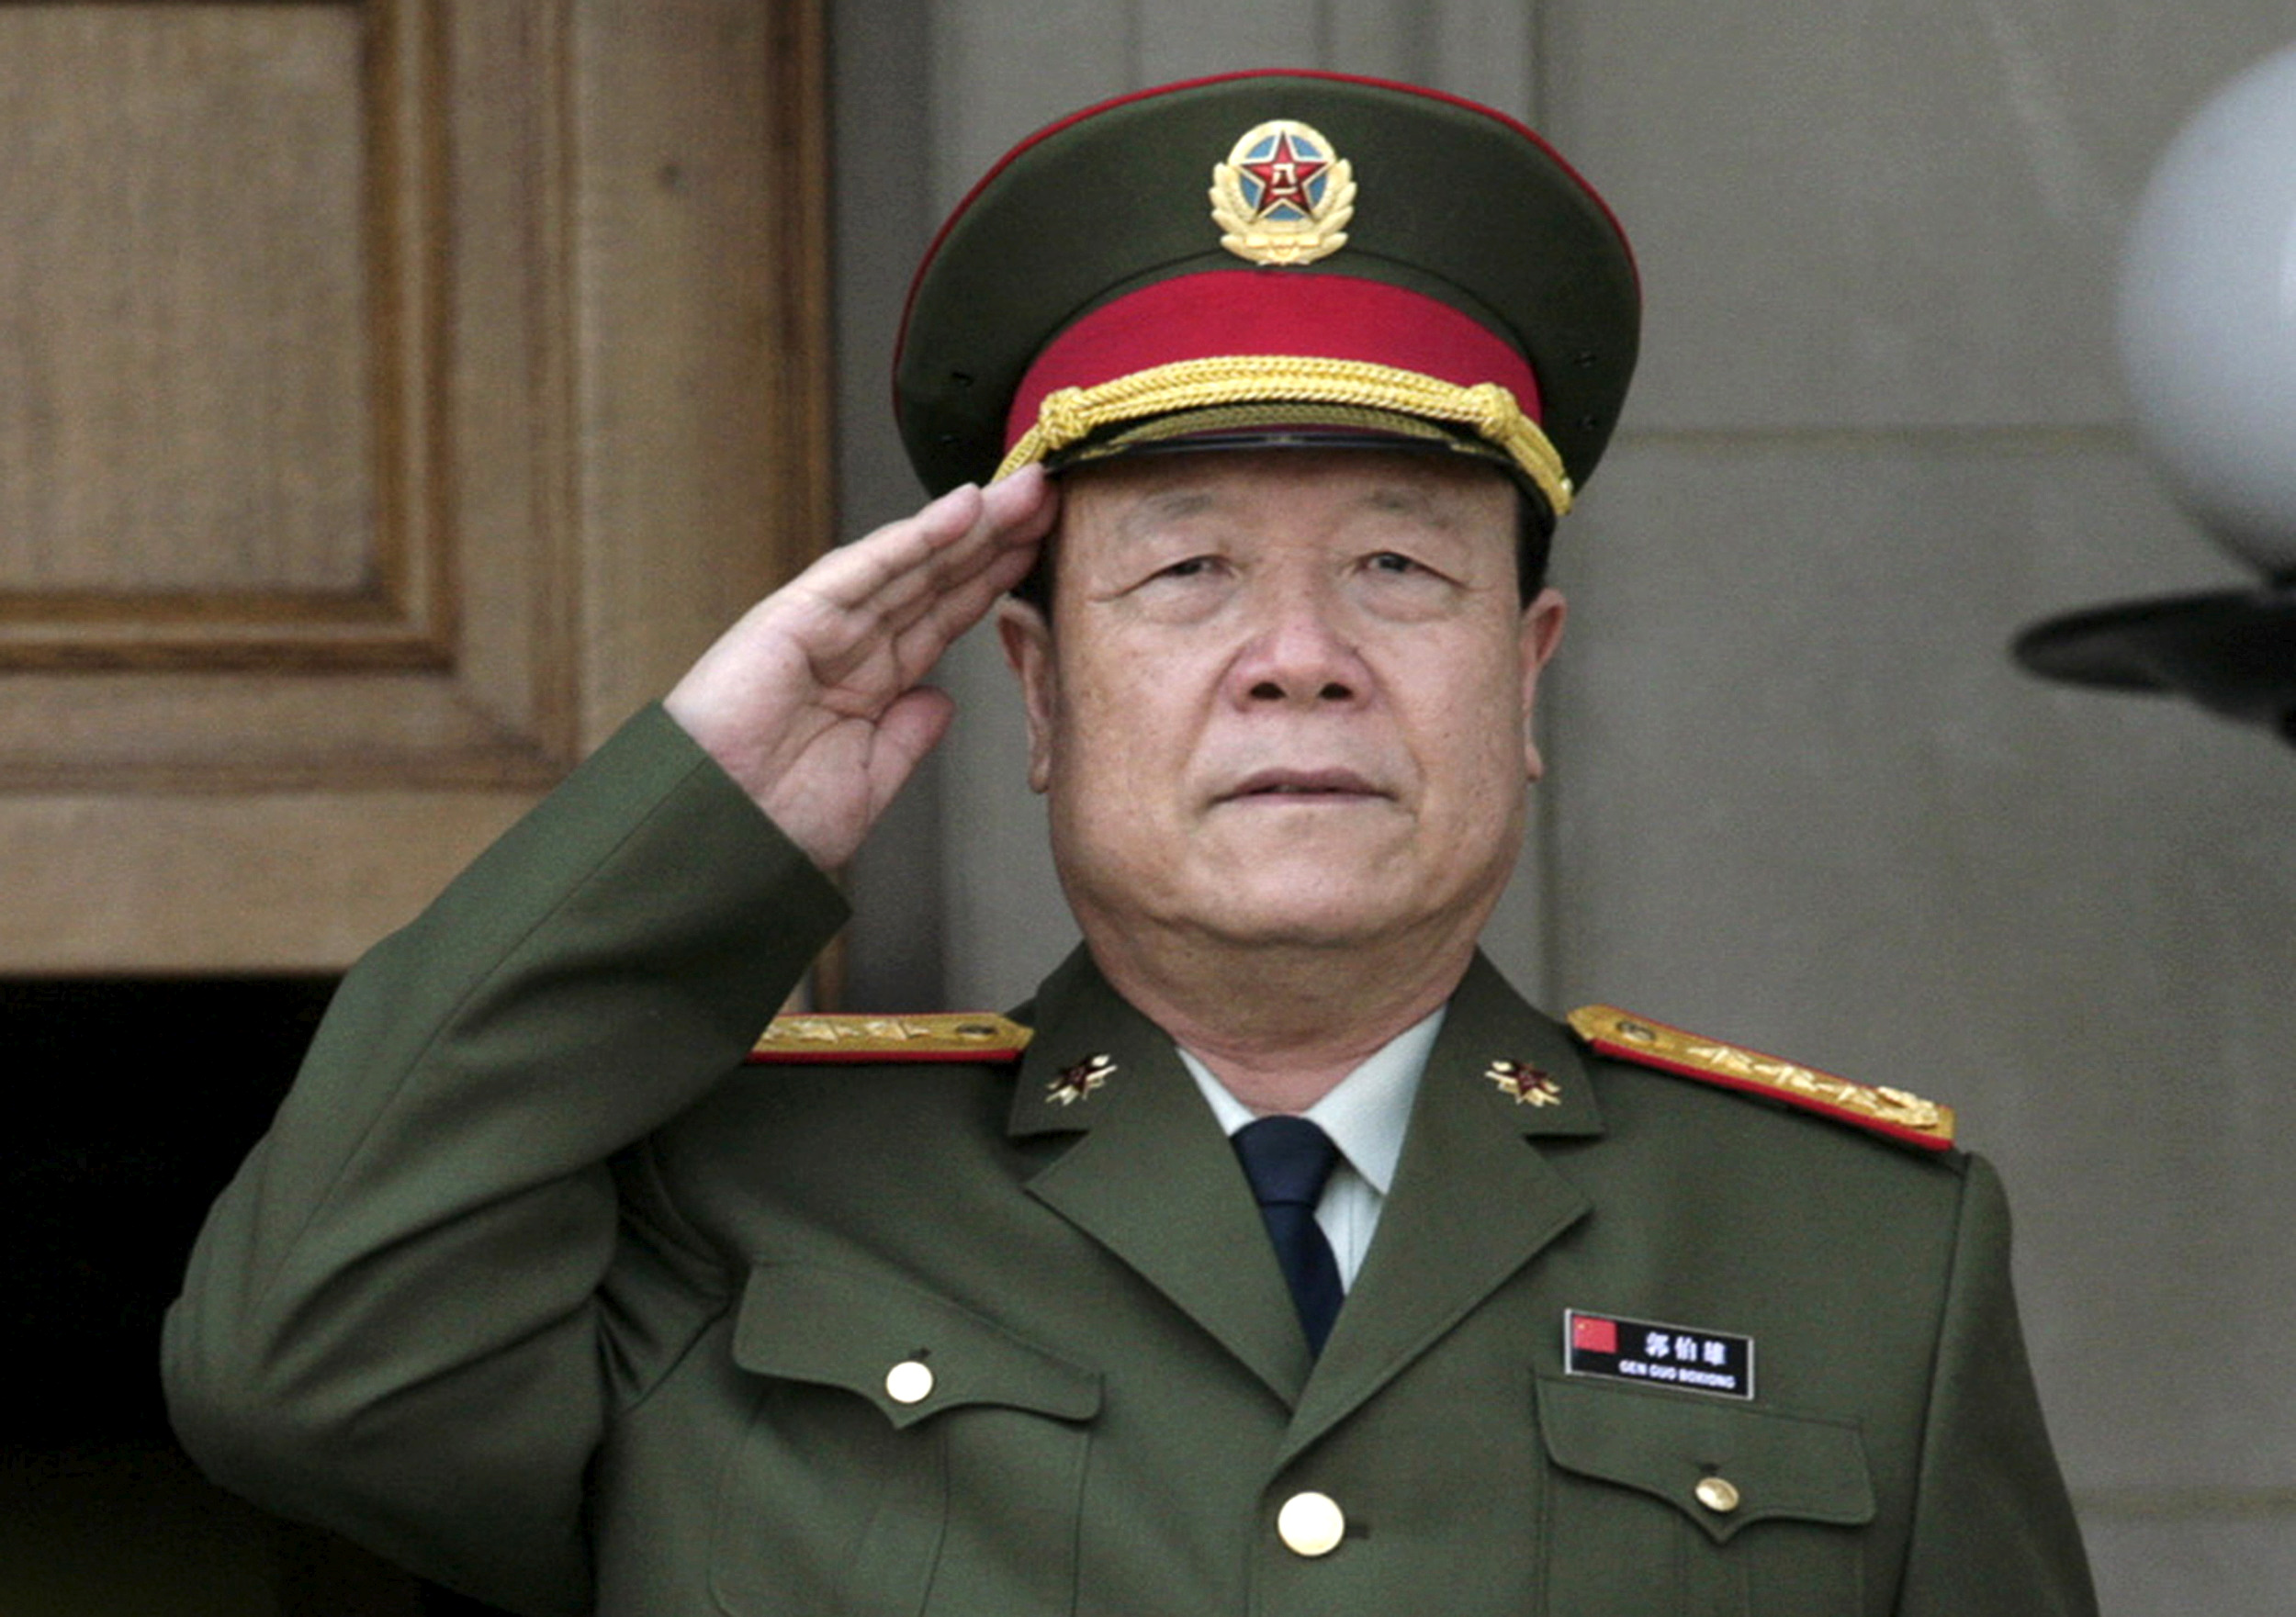 China's then Central Military Commission former Vice Chairman General Guo Boxiong stands at attention during the playing of the national anthem before a meeting at the Pentagon in Washington in this July 18, 2006 file photo.